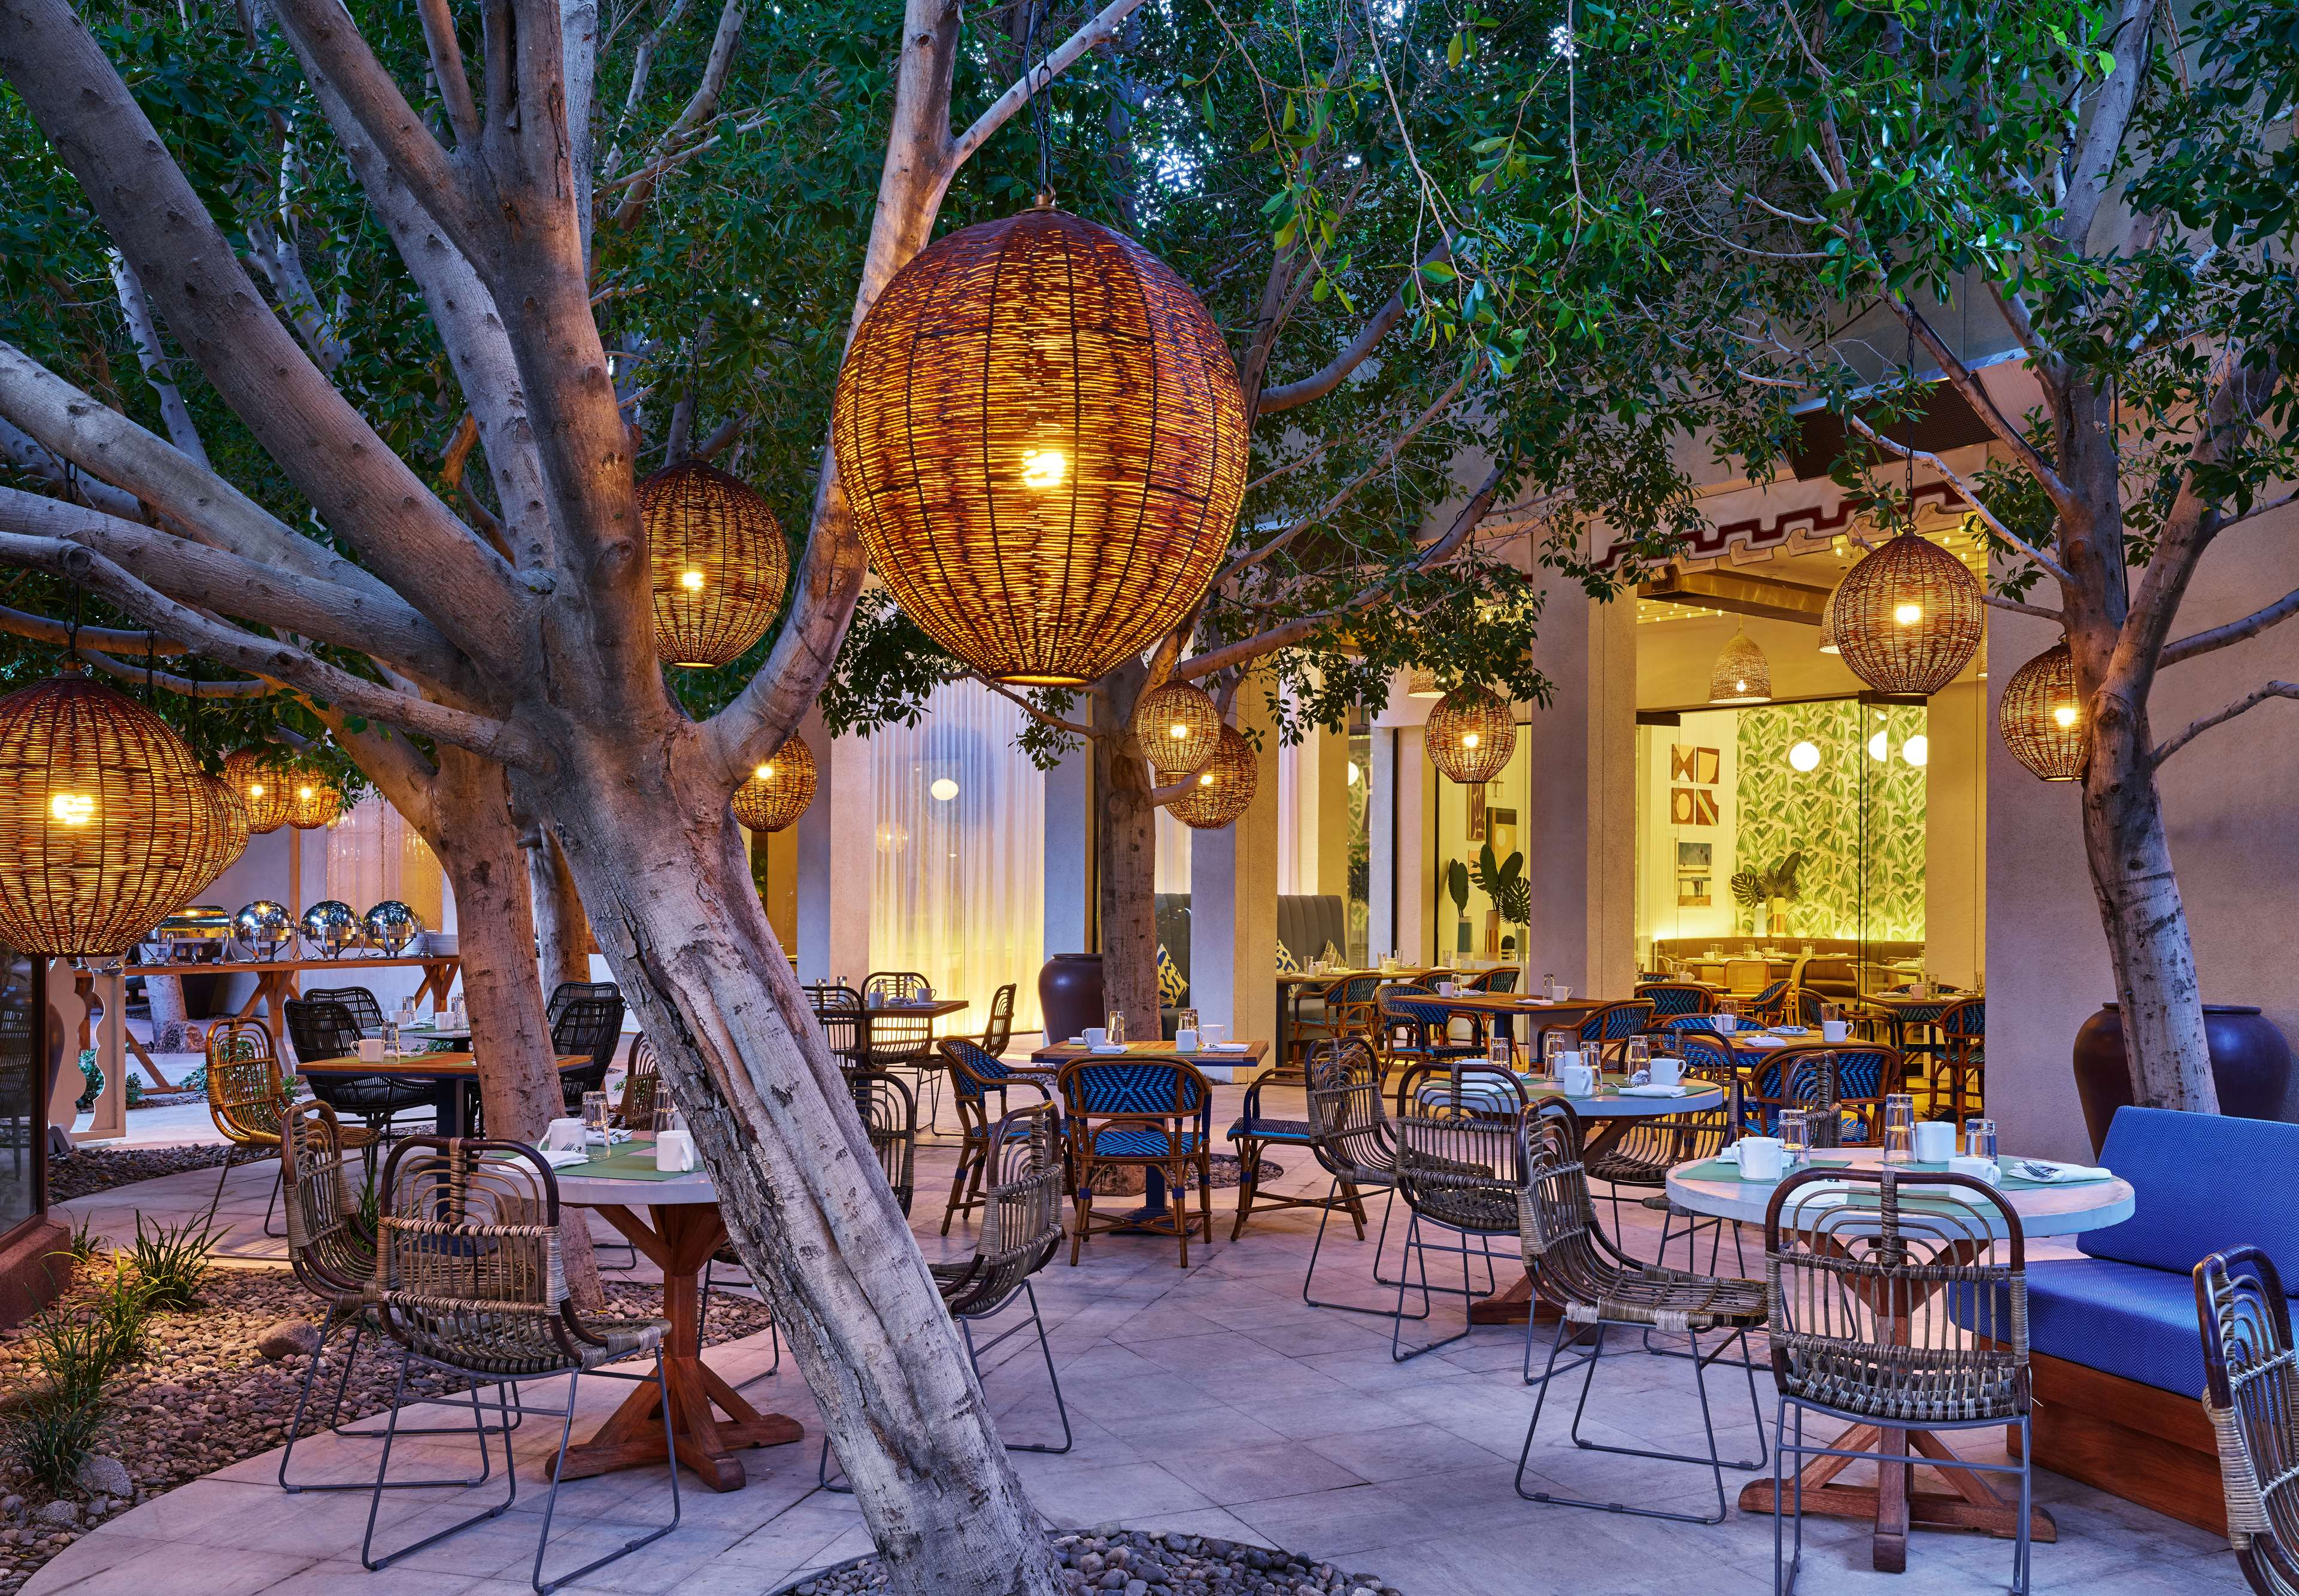 Promo code & hotel info. Hotel name: The Riviera Palm Springs, a Tribute Portfolio Resort Address: North Indian Canyon Drive City: Palm Springs, California (United States) Zip code: CA Description: Experience first-class relaxation and luxury services such as a full-service spa, at this Palm Springs, California hotel with world-class golf, shopping and sightseeing opportunities.